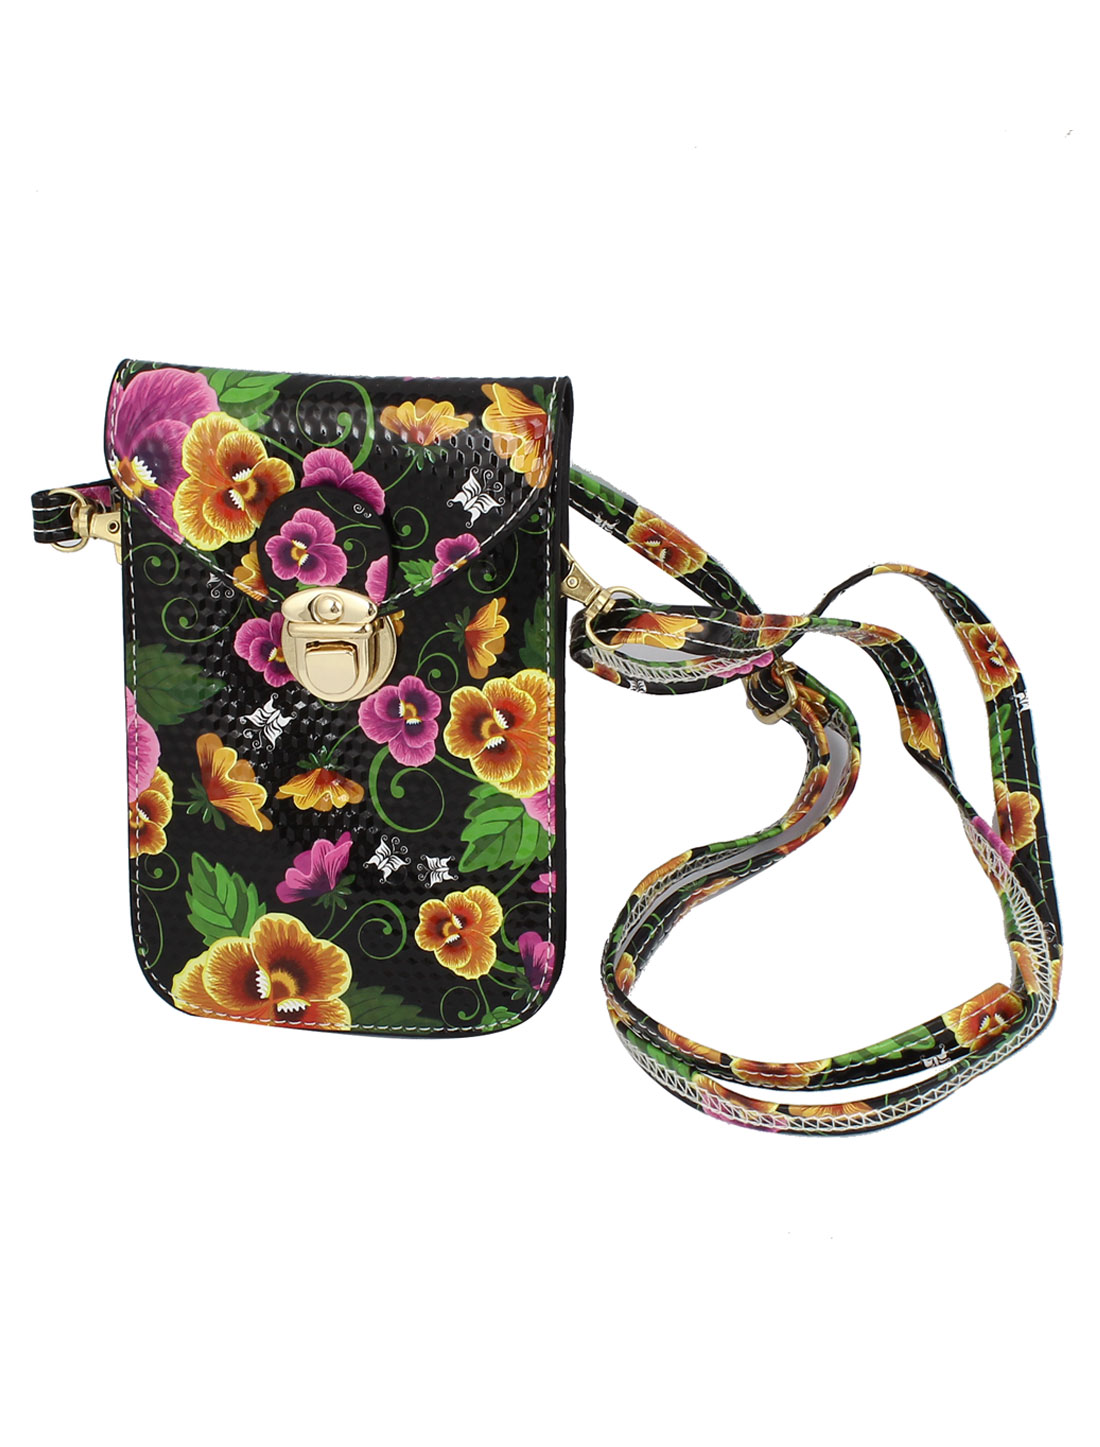 Ladies Faux Leather 2 Compartments Flower Printed Push Lock Closure Cross-Body Bag Purse Black